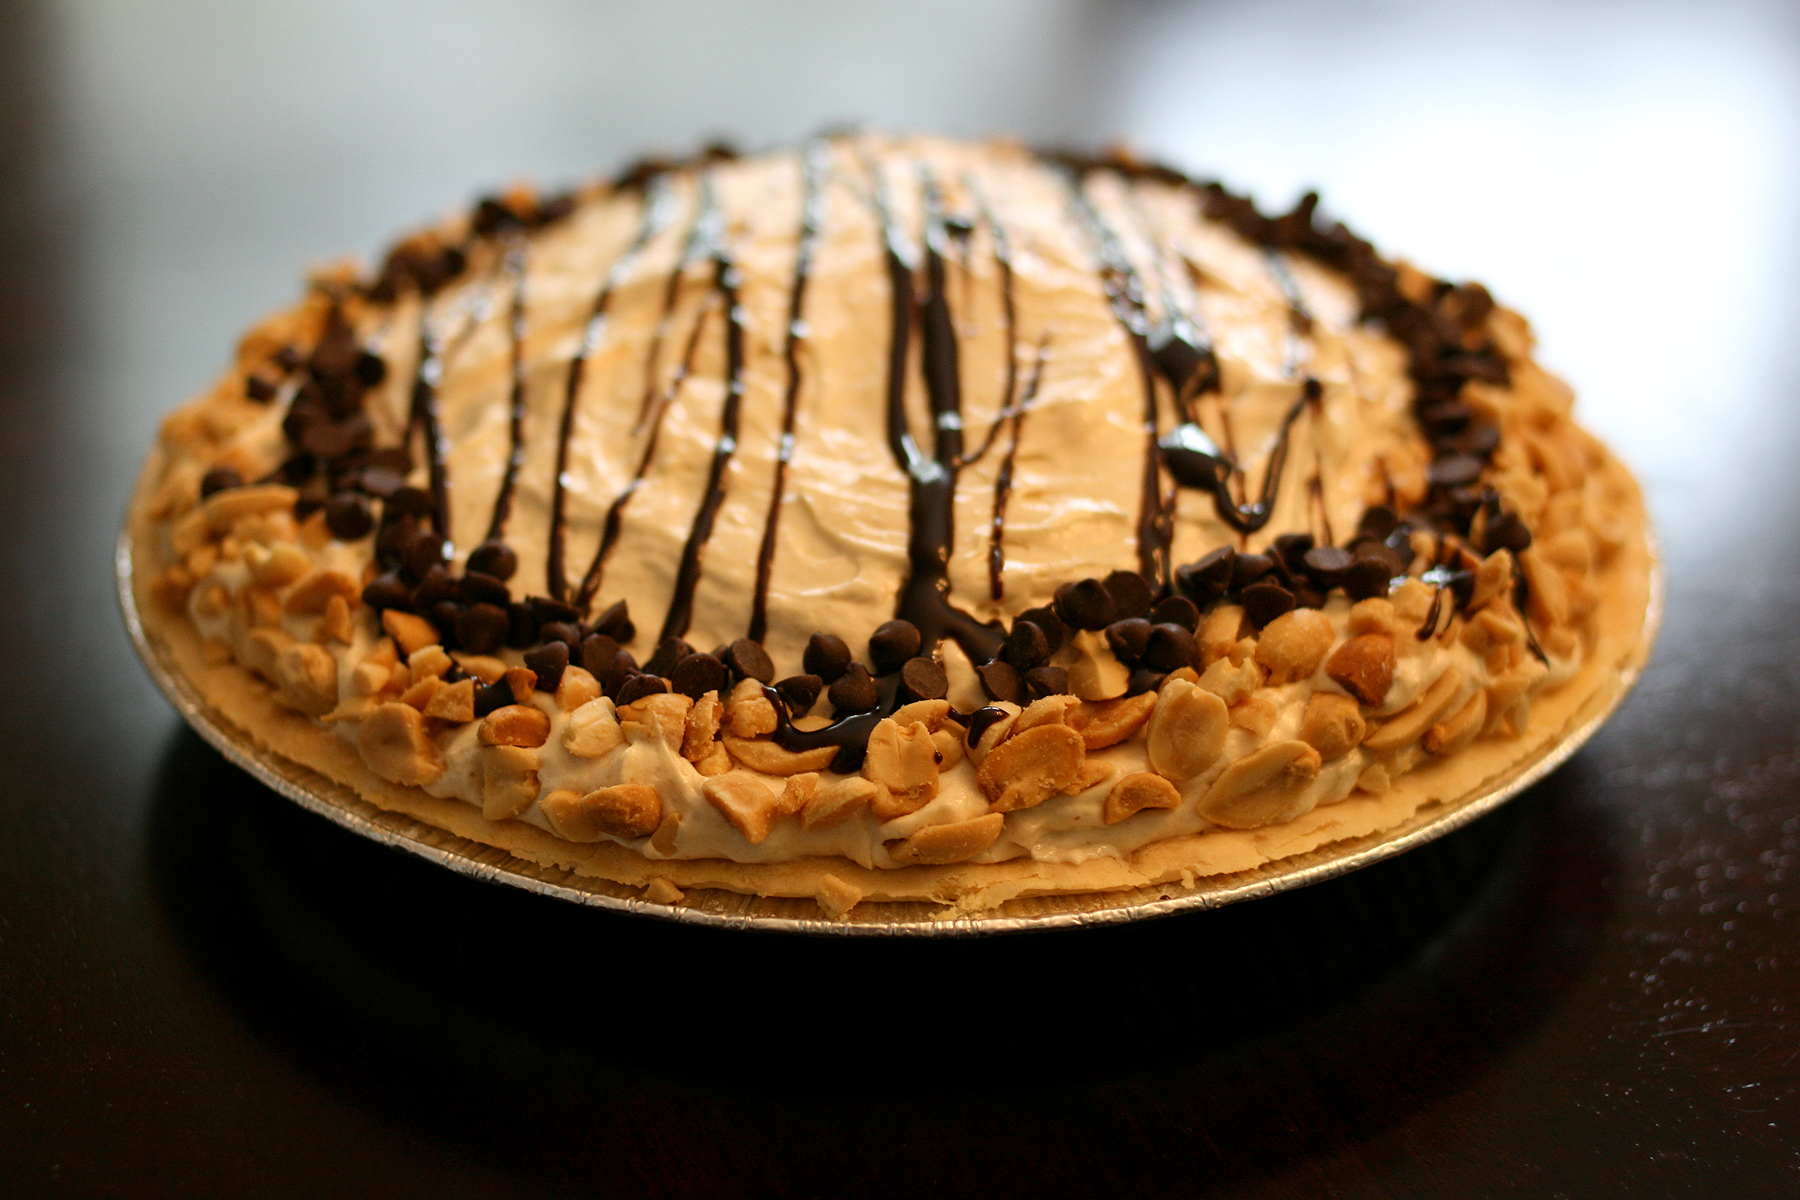 Debbi's Mile-High Peanut Butter-Brownie Pie | Flickr - Photo Sharing!